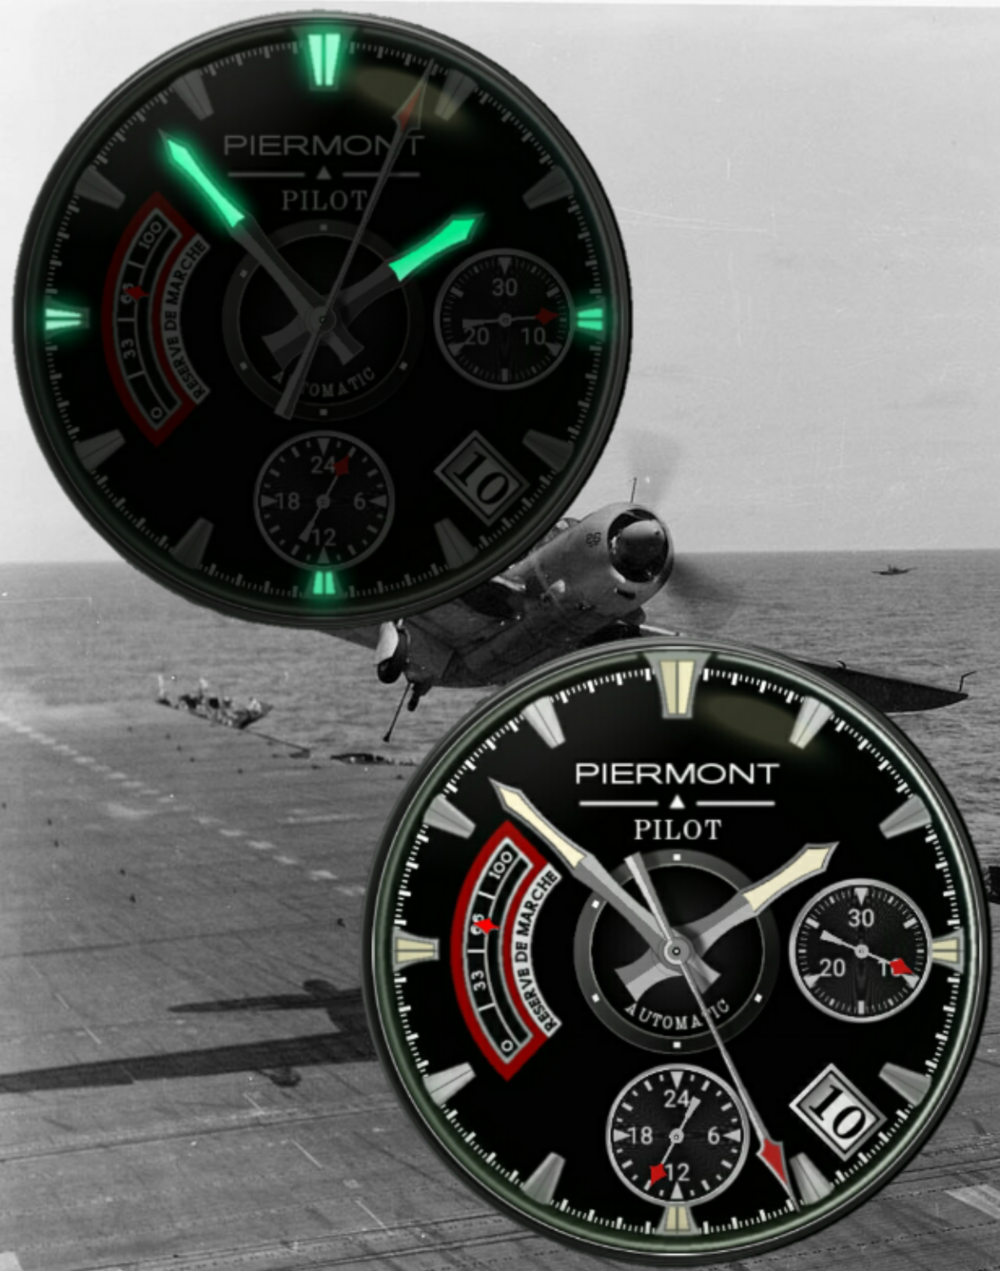 Piermont Vintage Pilot Smartwatch with Stopwatch, Date, Watch Battery Meter